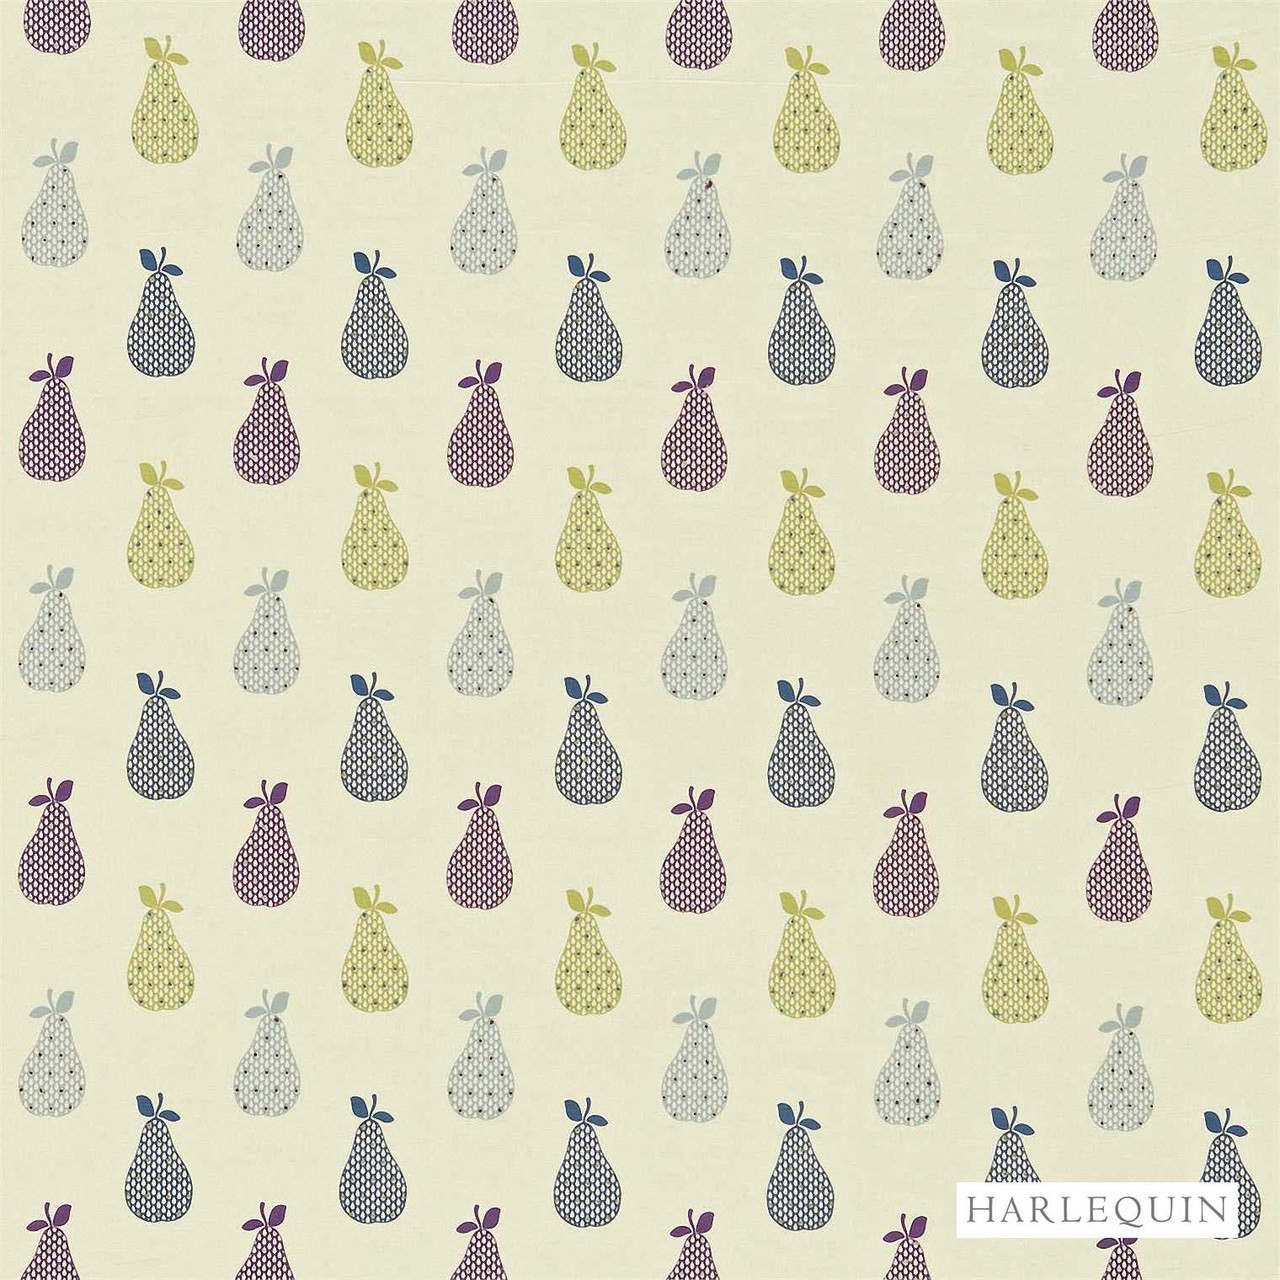 Harlequin Josefa 130348  | Curtain Fabric - Fibre Blends, Floral, Garden, Harlequin, Midcentury, Pink, Purple, Commercial Use, Domestic Use, Kitchen, Standard Width